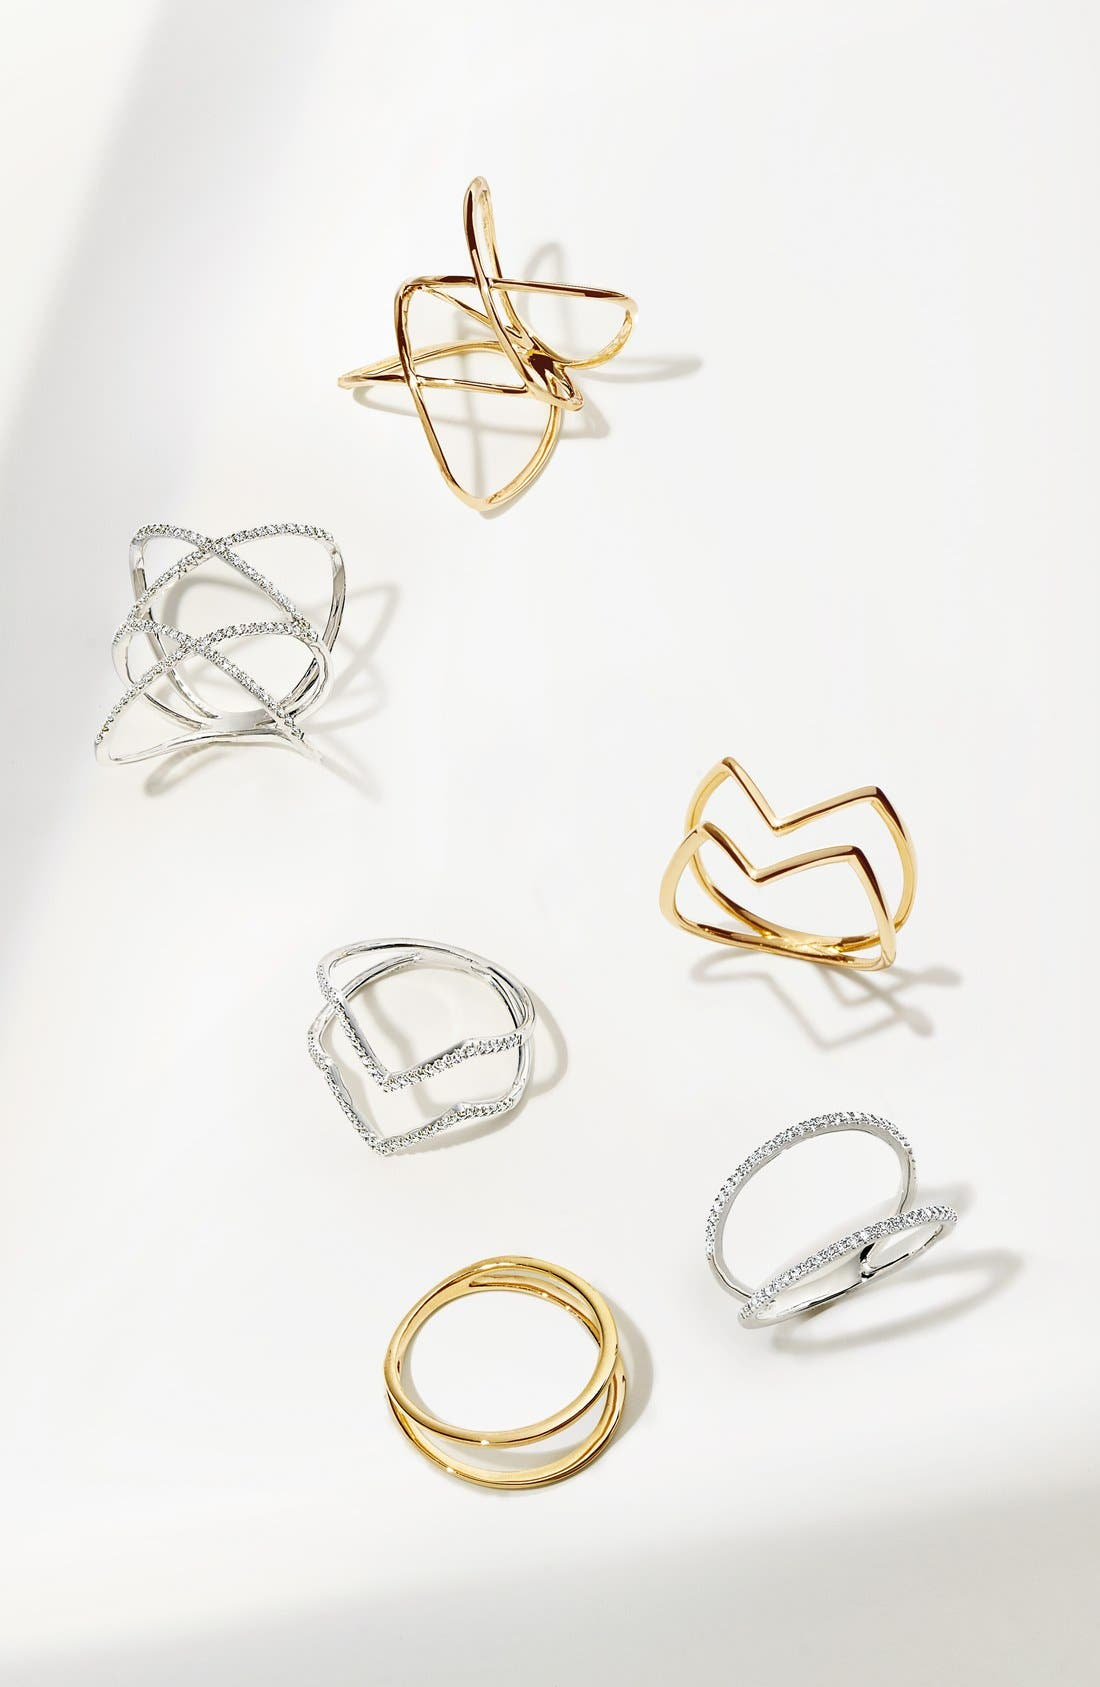 14KT Two Bar Ring,                             Alternate thumbnail 3, color,                             YELLOW GOLD